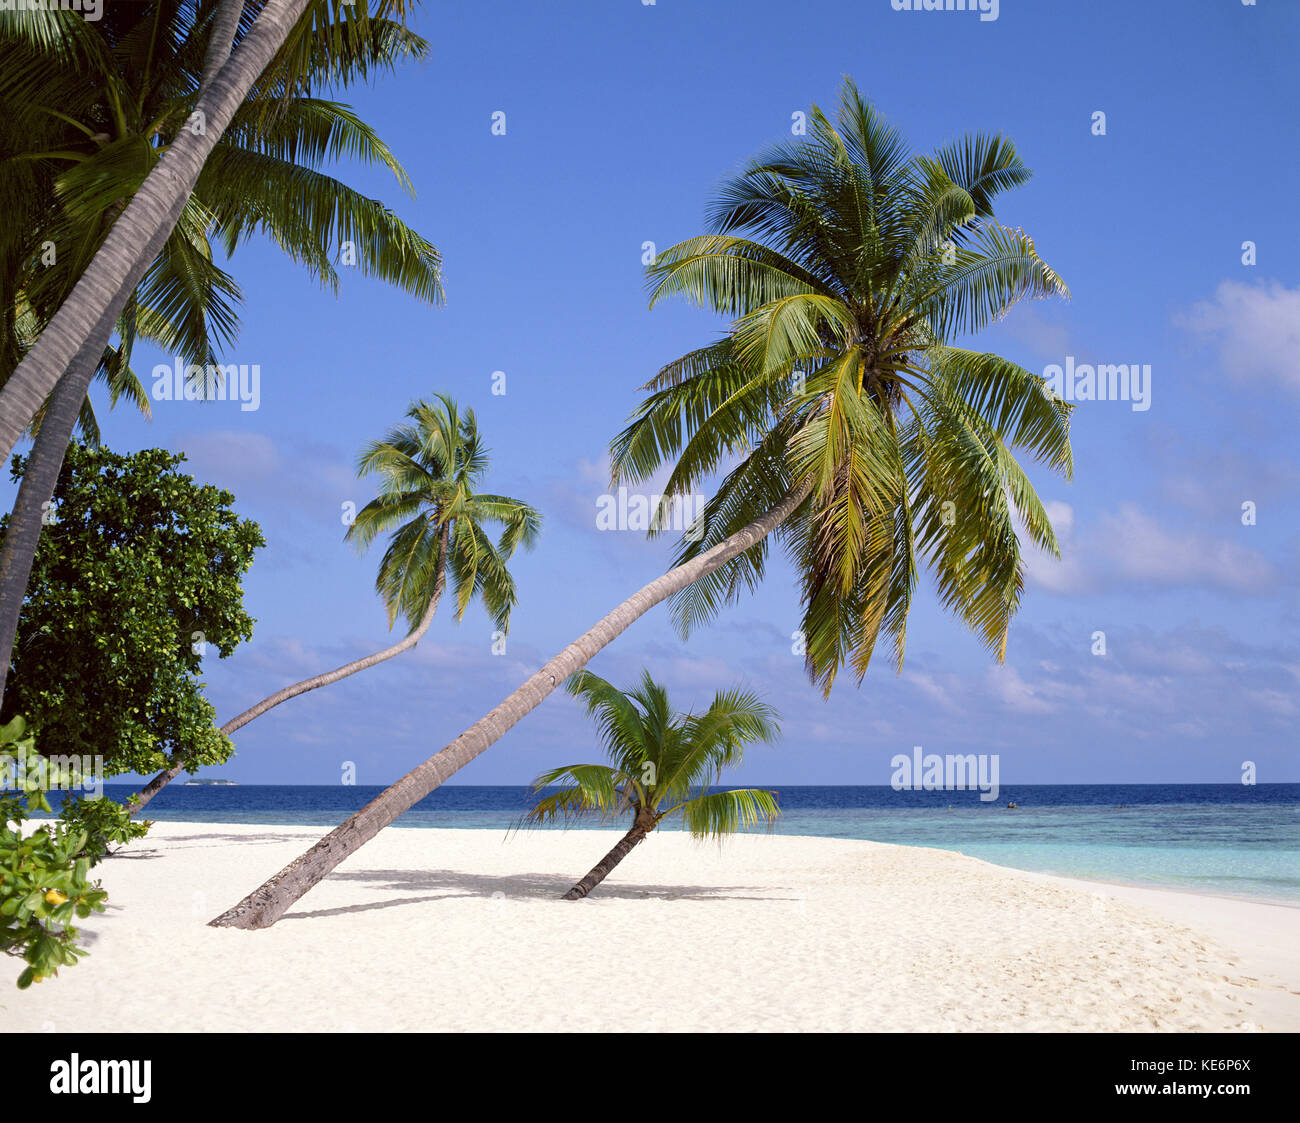 Tropical beach, Kuda Bandos Island, Kaafu Atoll, Republic of Maldives - Stock Image